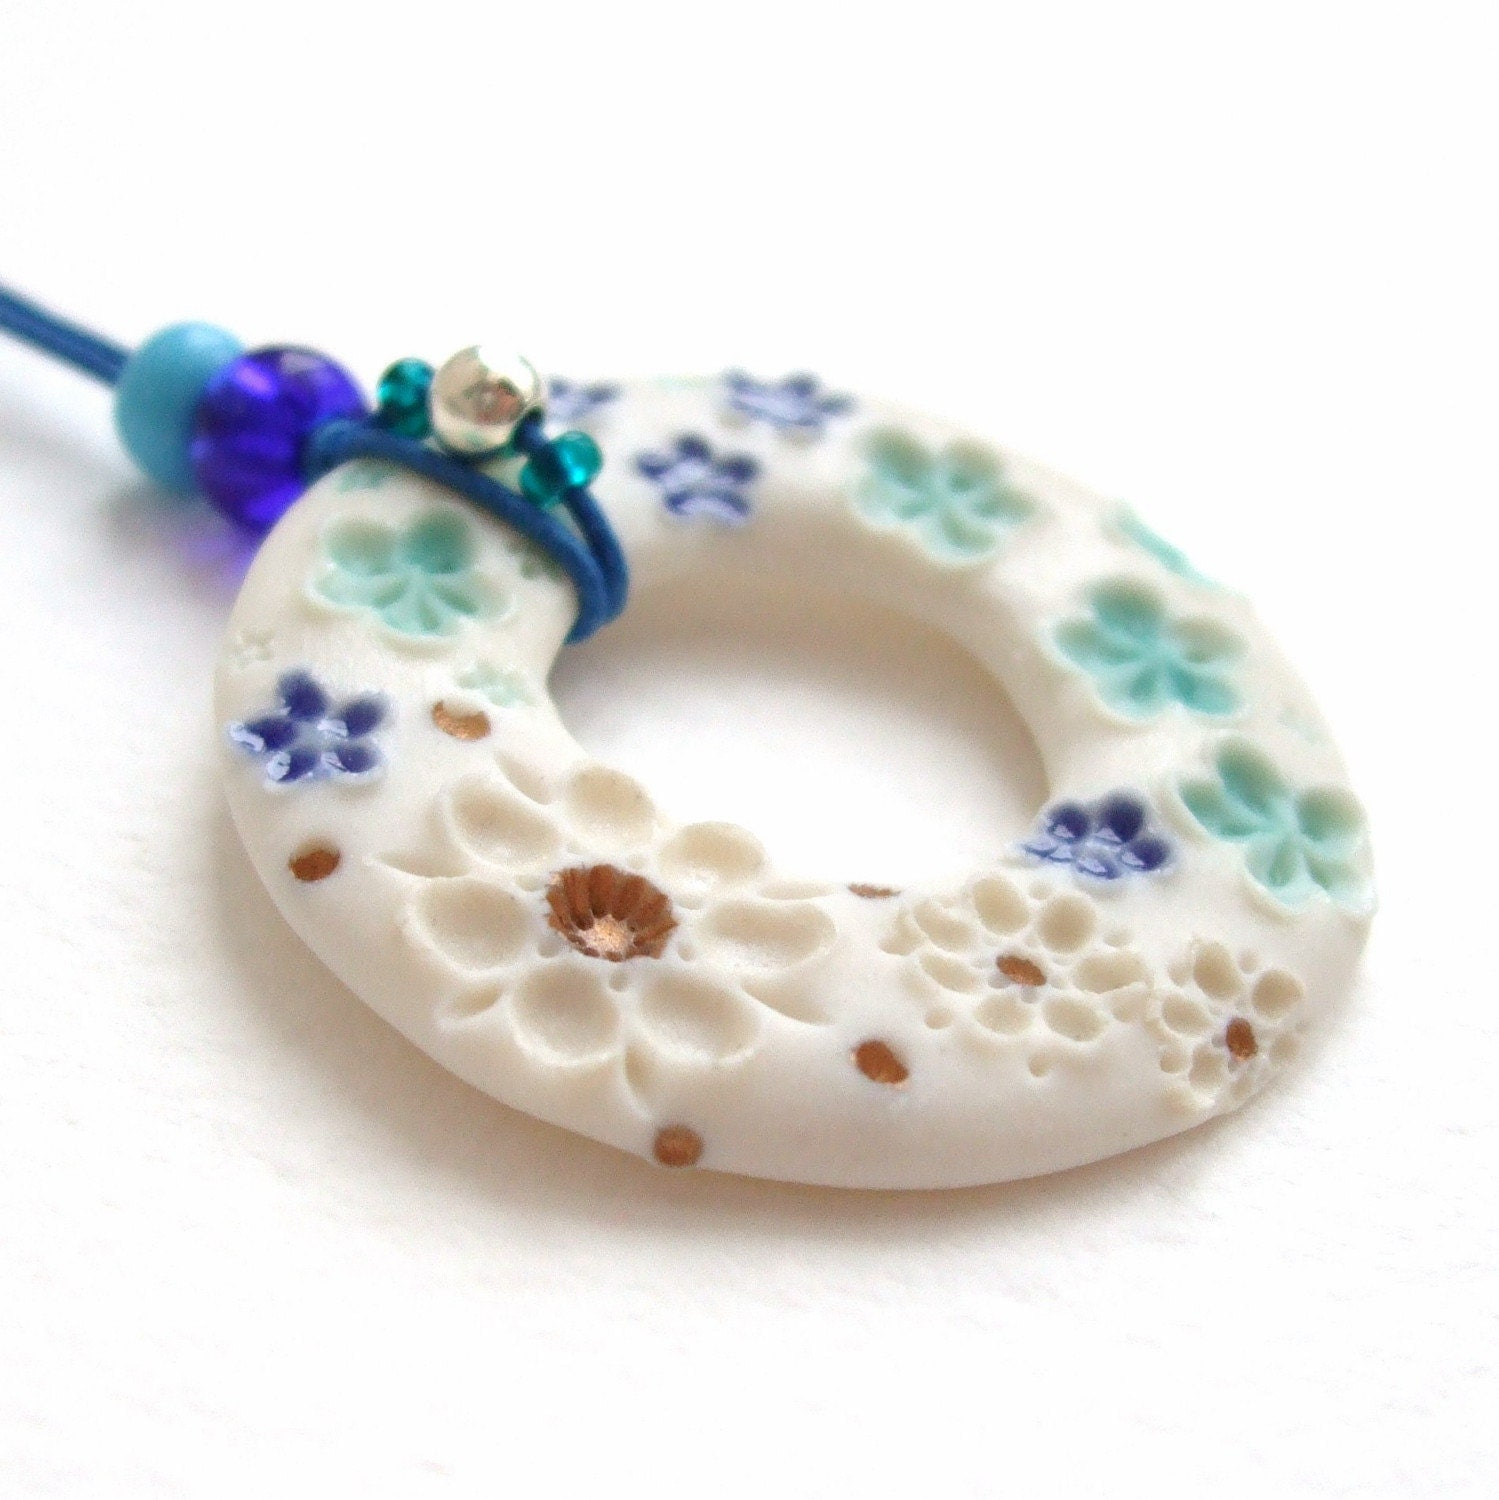 Porcelain Doughnut - Forget-me-not